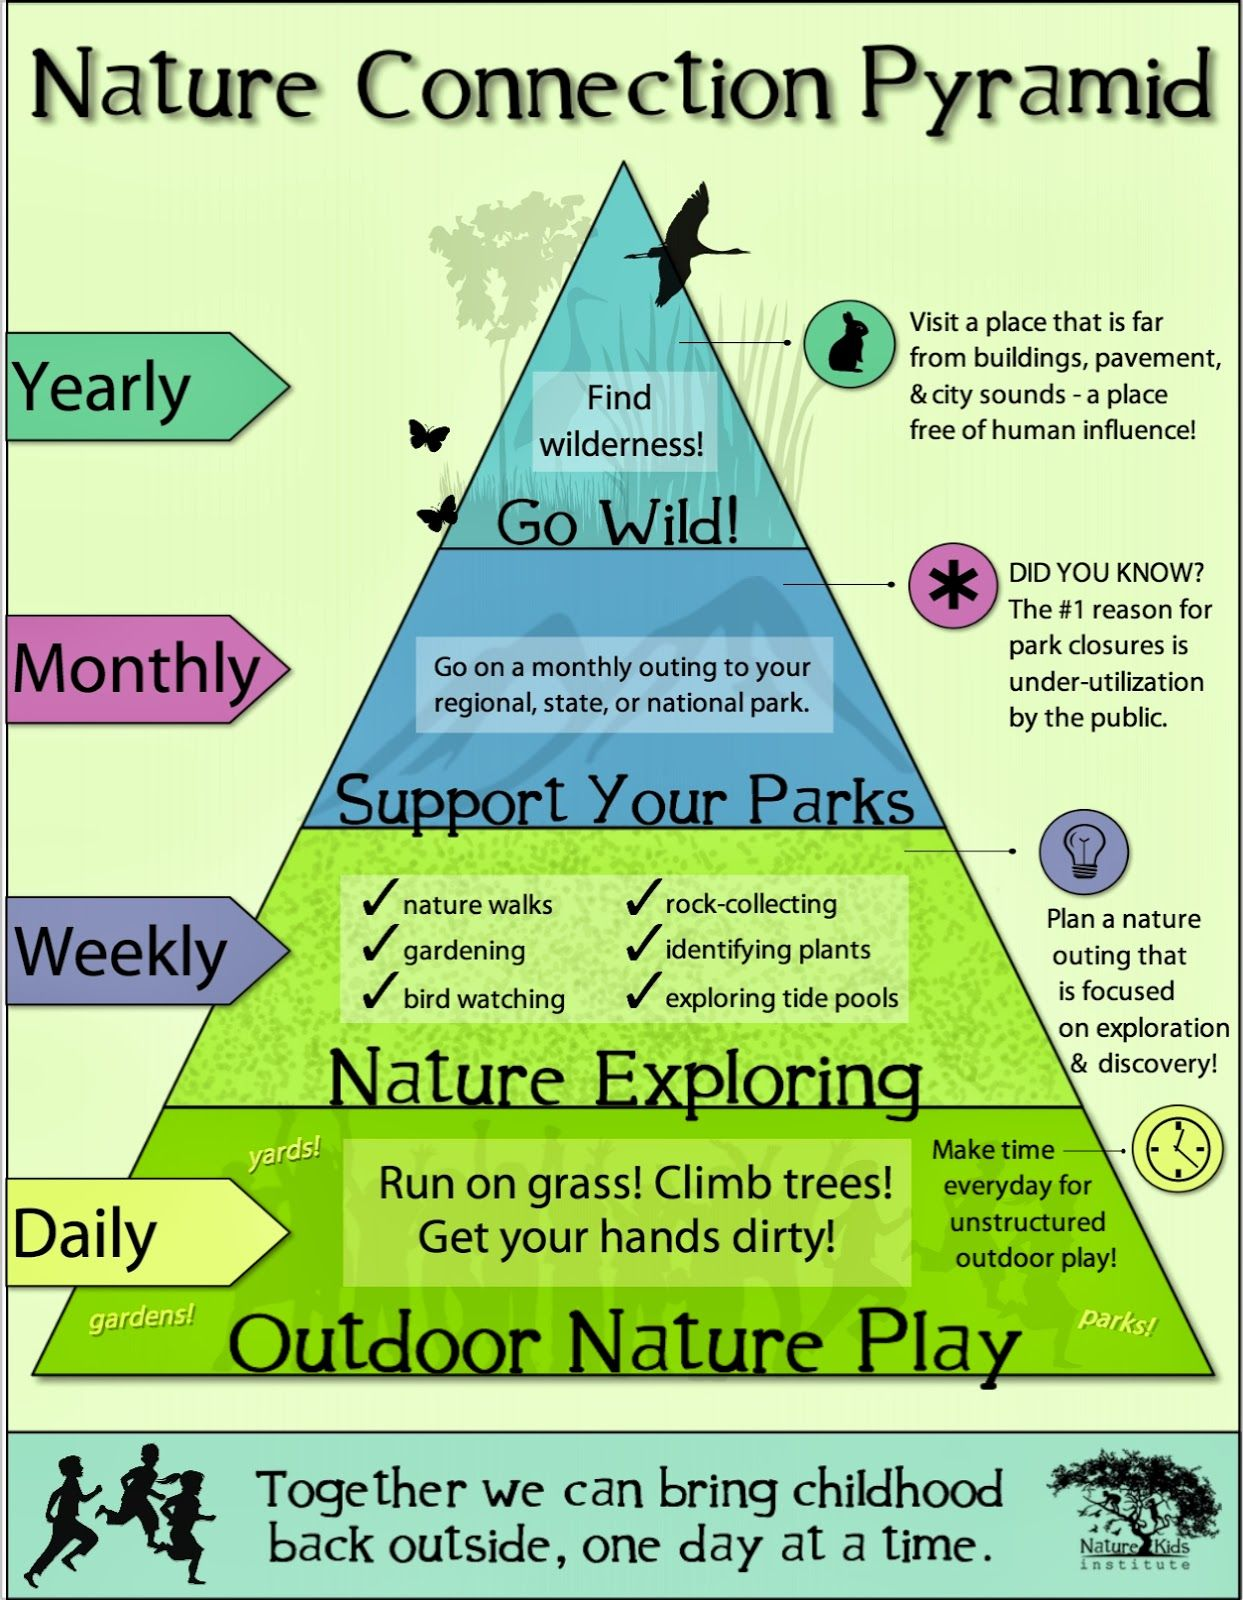 Design poster urging mountaineers preserve pristine glory mountainsides - 17 Best Images About Trek Camp Adventure On Pinterest John Muir Quotes Nature And Ushuaia